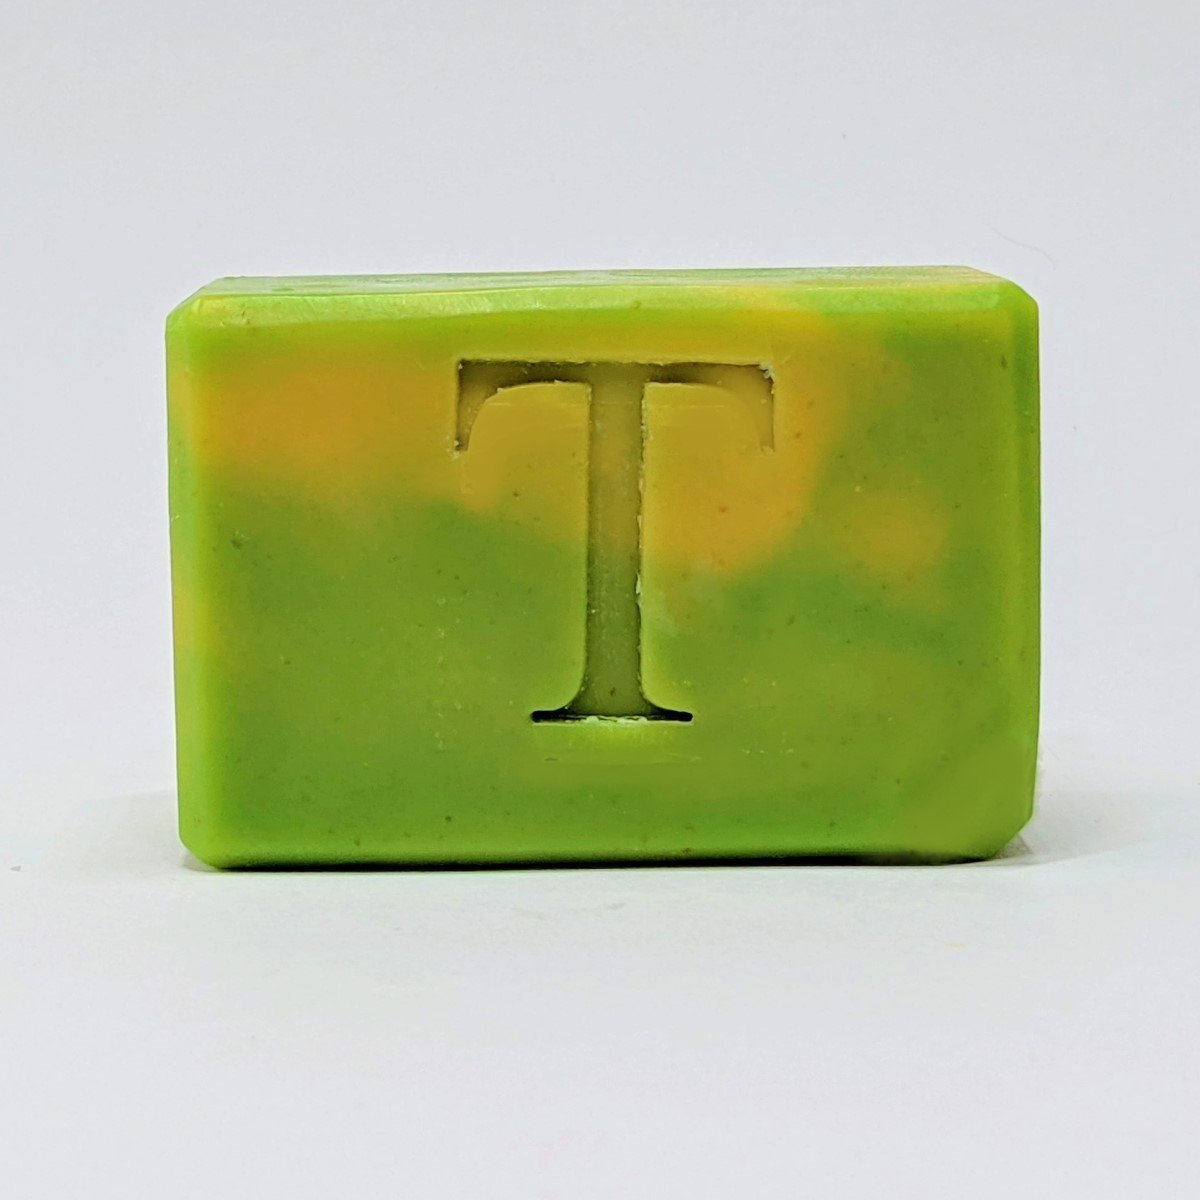 Lemongrass Rosemary All Natural Goat's Milk Soap with Essential Oils - Thompson's Luxury Soap